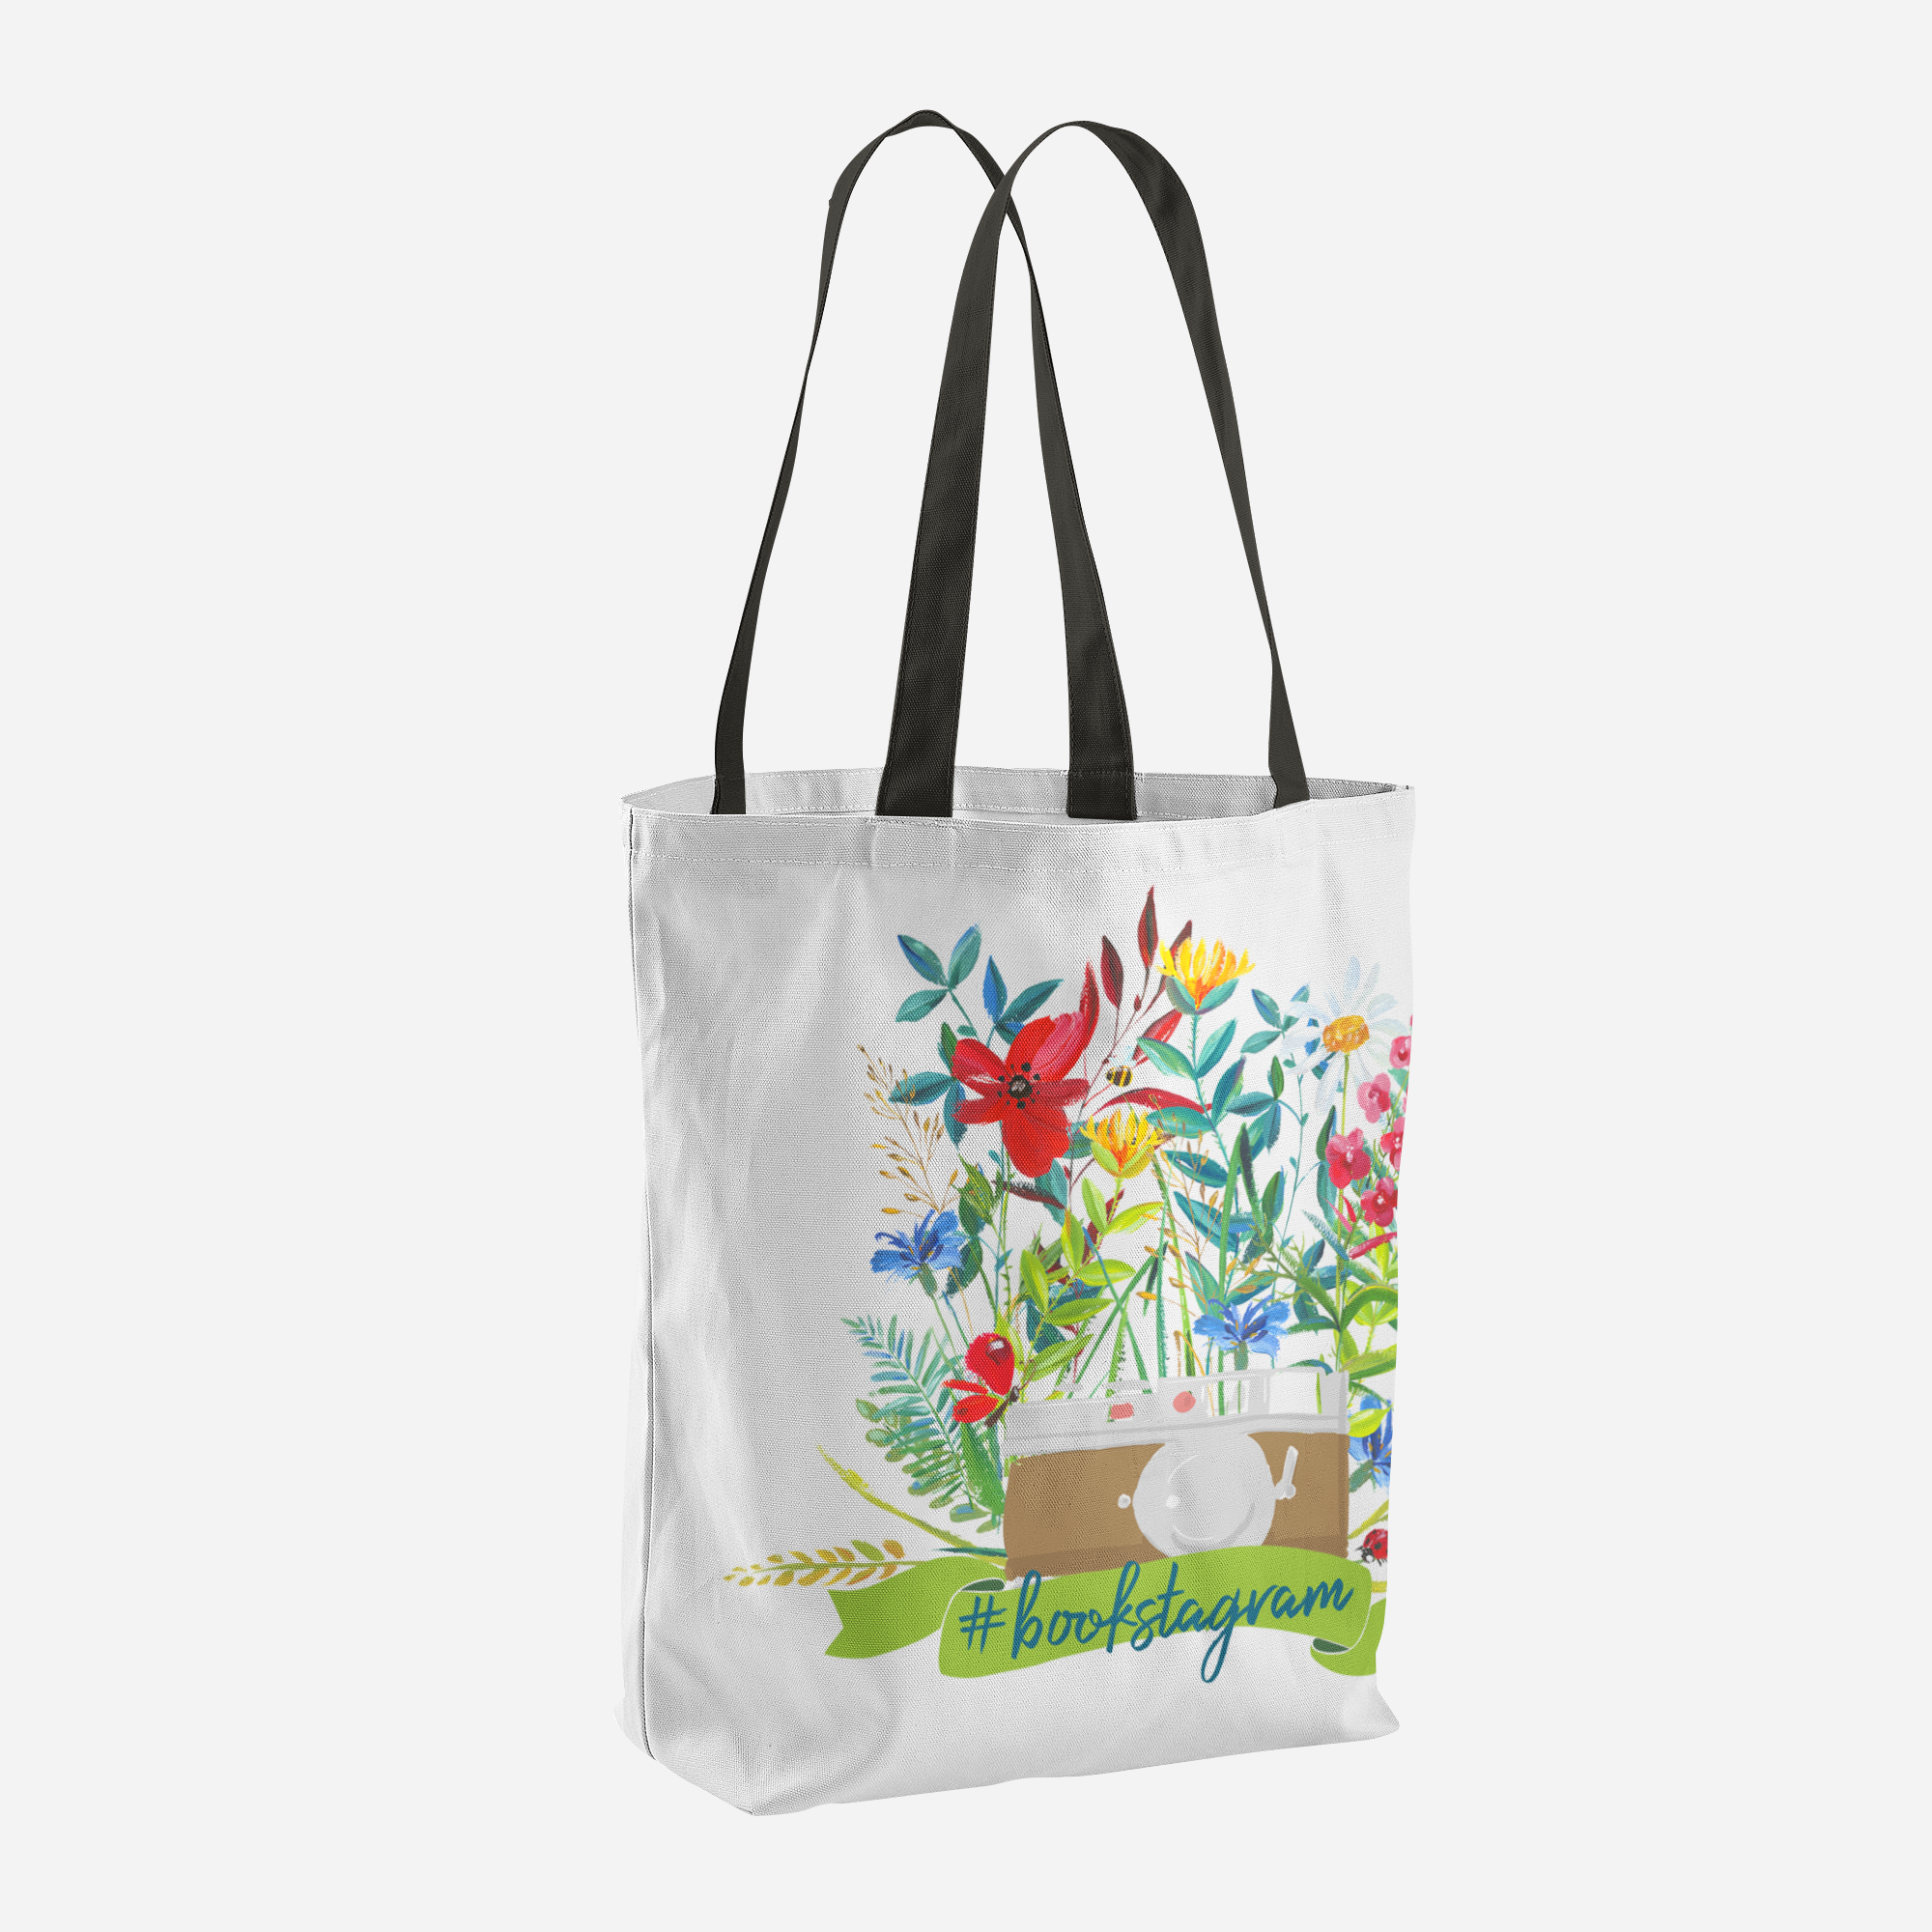 #bookstagram Floral Tote Bag - LitLifeCo.